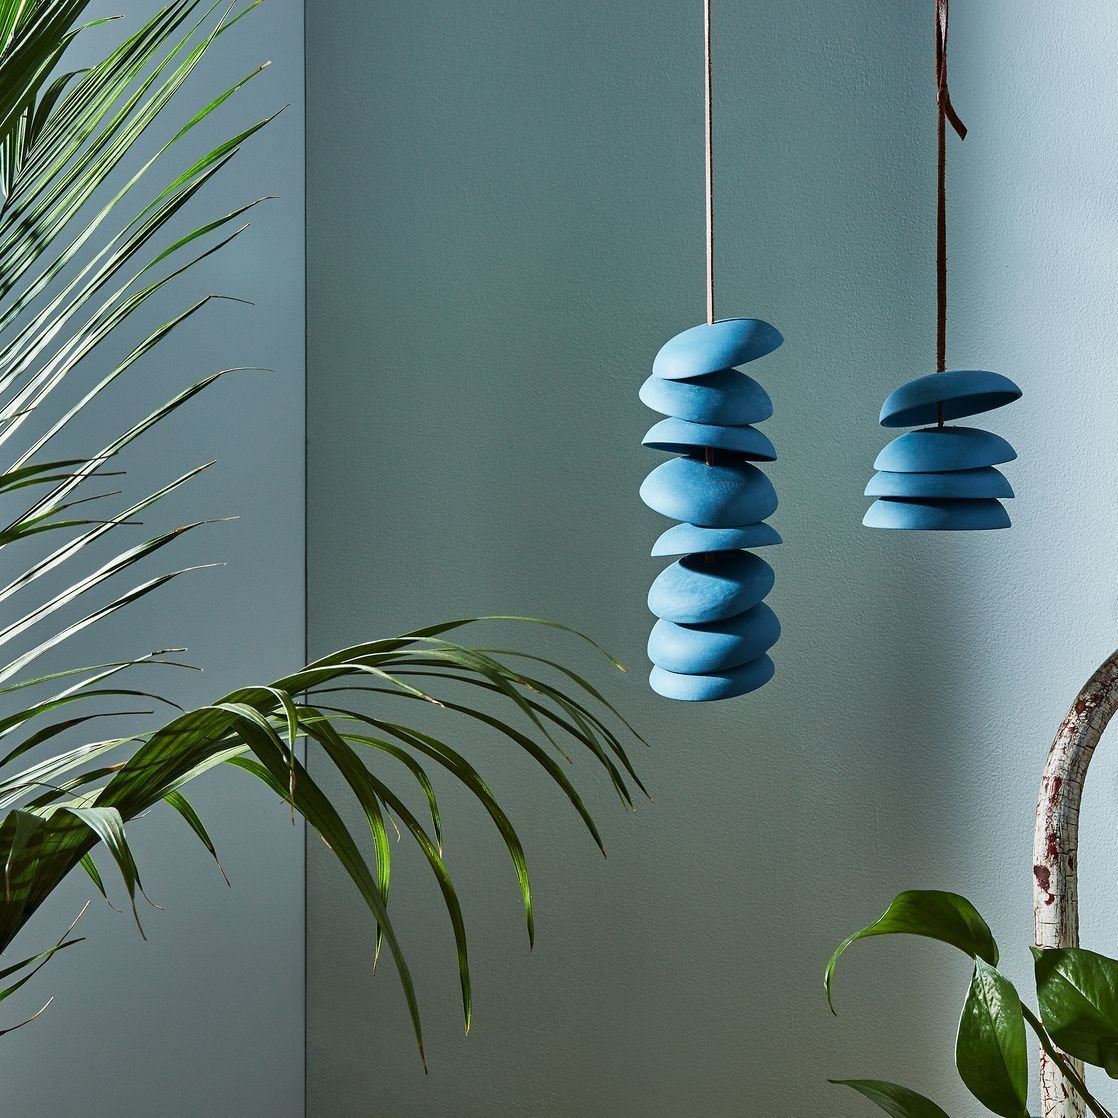 Photo 1 of 1 in Blue Porcelain Wind Chimes